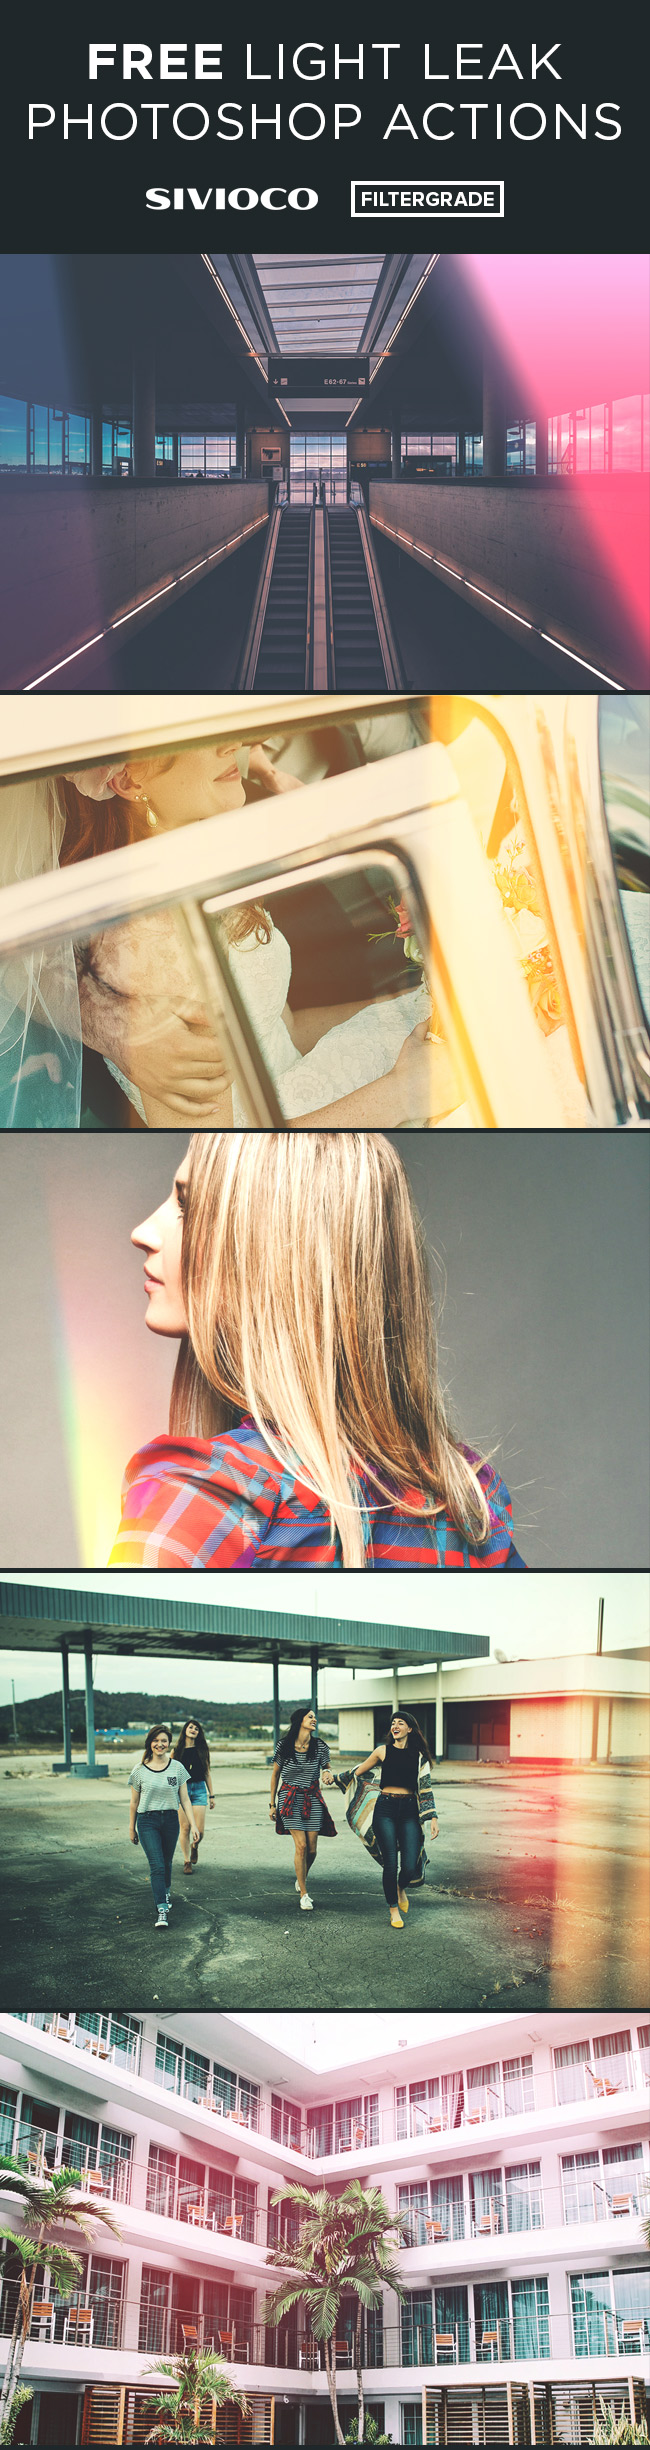 Free Light Leak Photoshop Actions from Sivioco and FilterGrade.